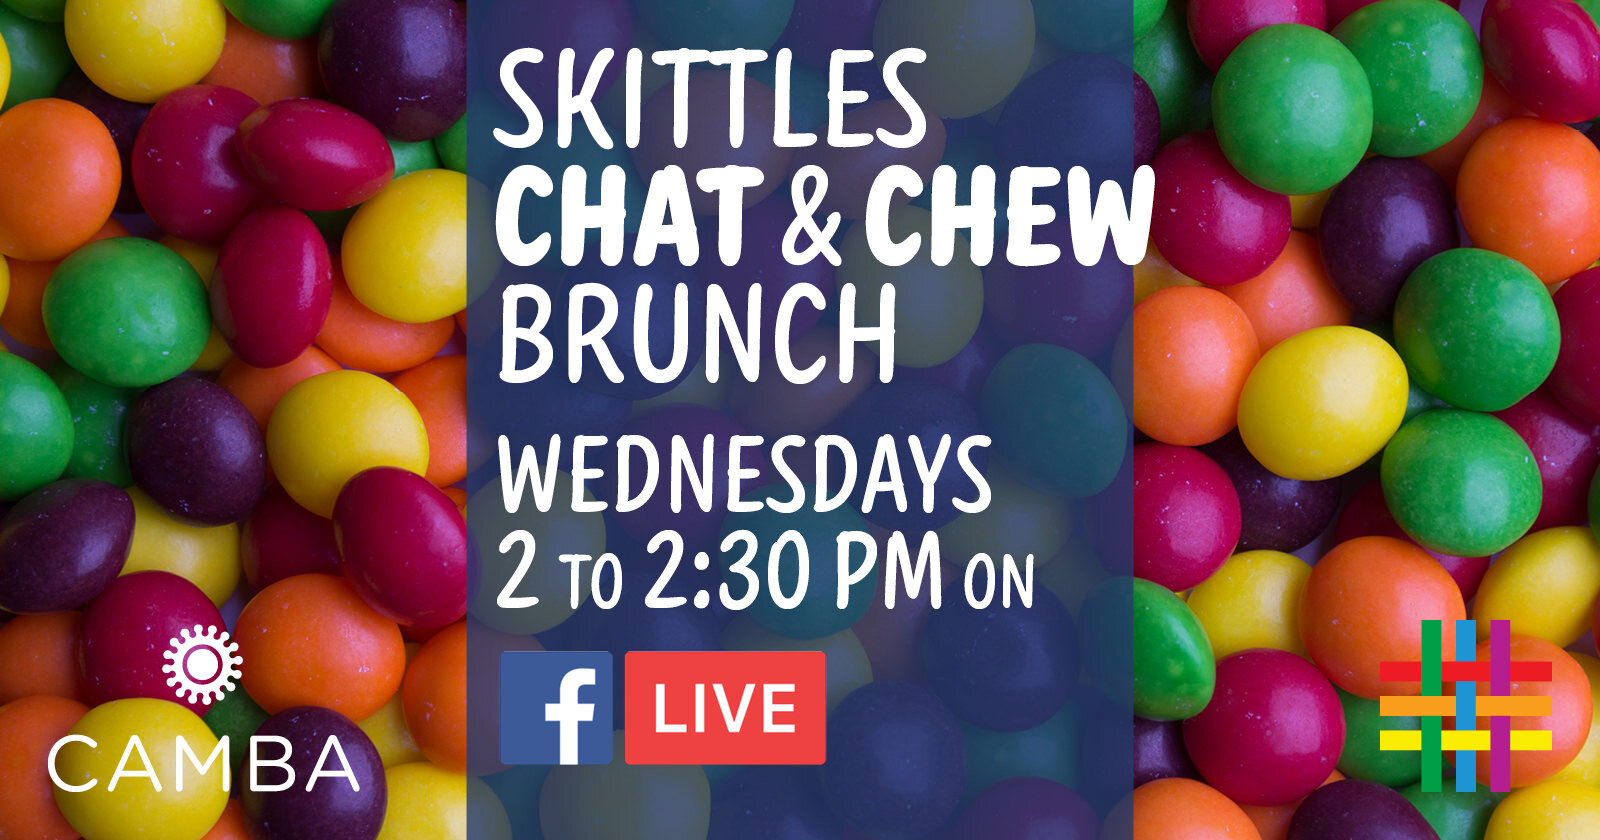 Skittles Chat & Chew Brunch at Brooklyn Community Pride Center